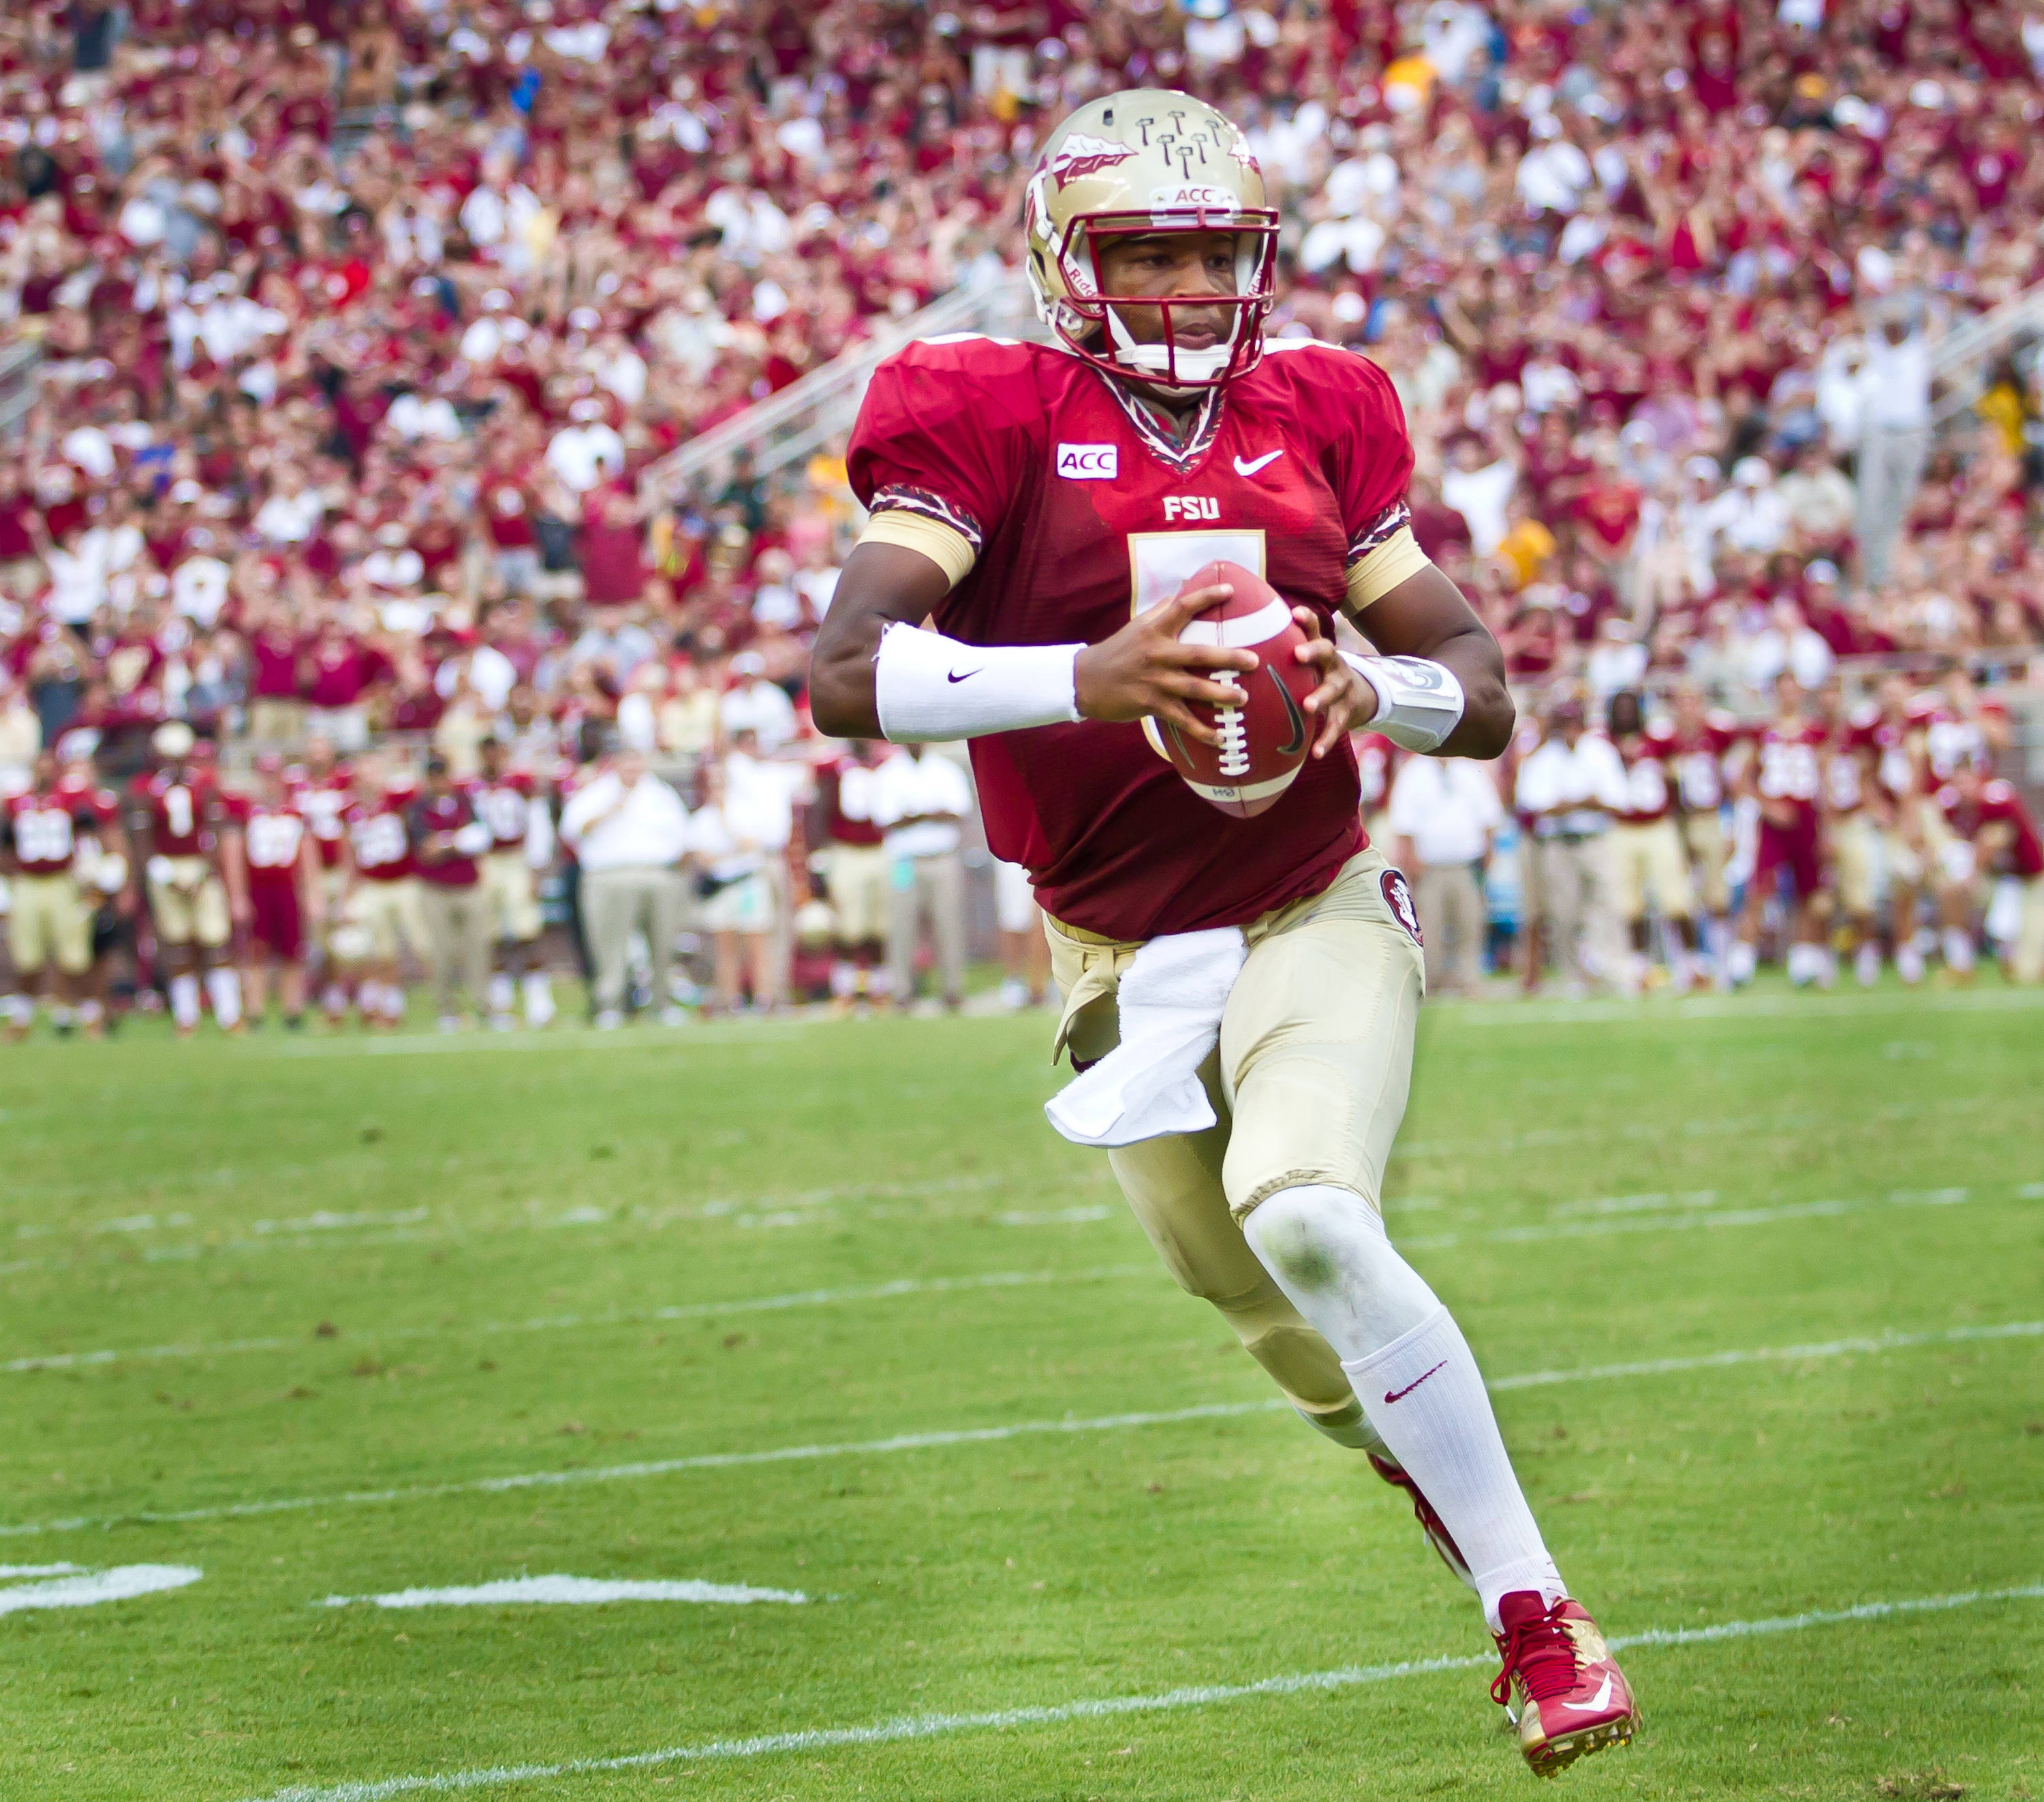 Jameis Winston (5) on a TD run.